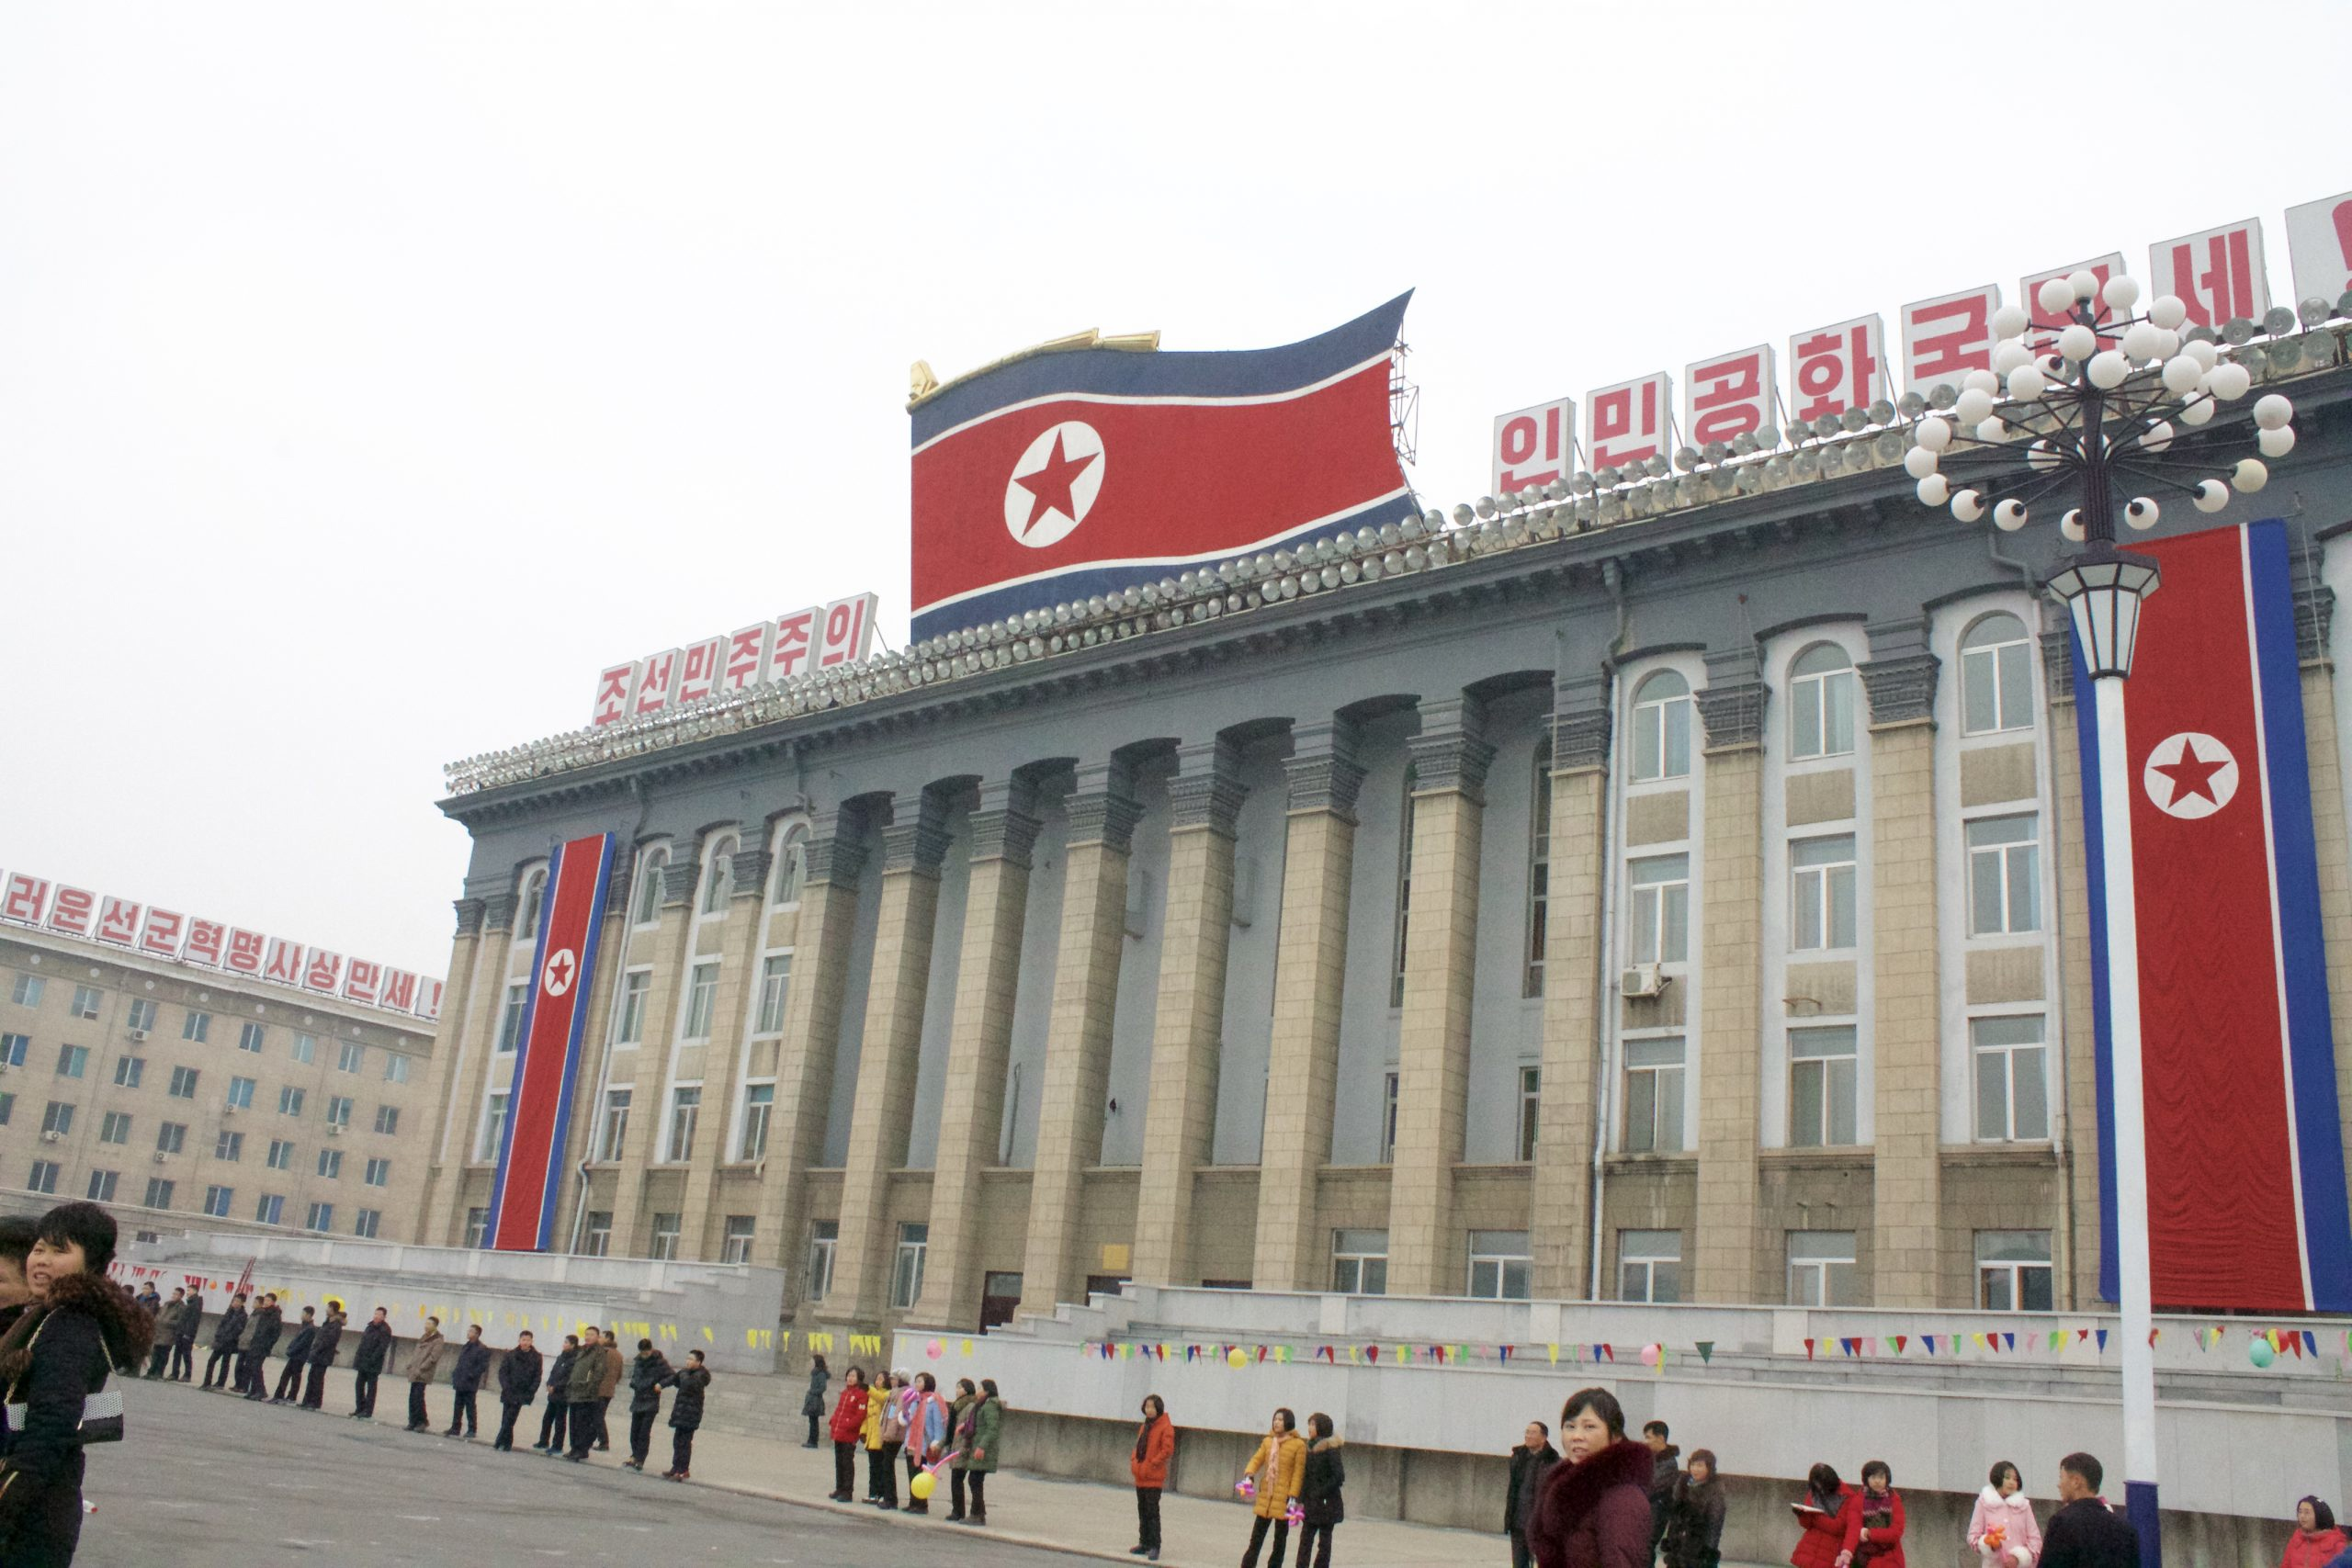 US faces crisis if it continues old and backward policies - DPRK Foreign Ministry